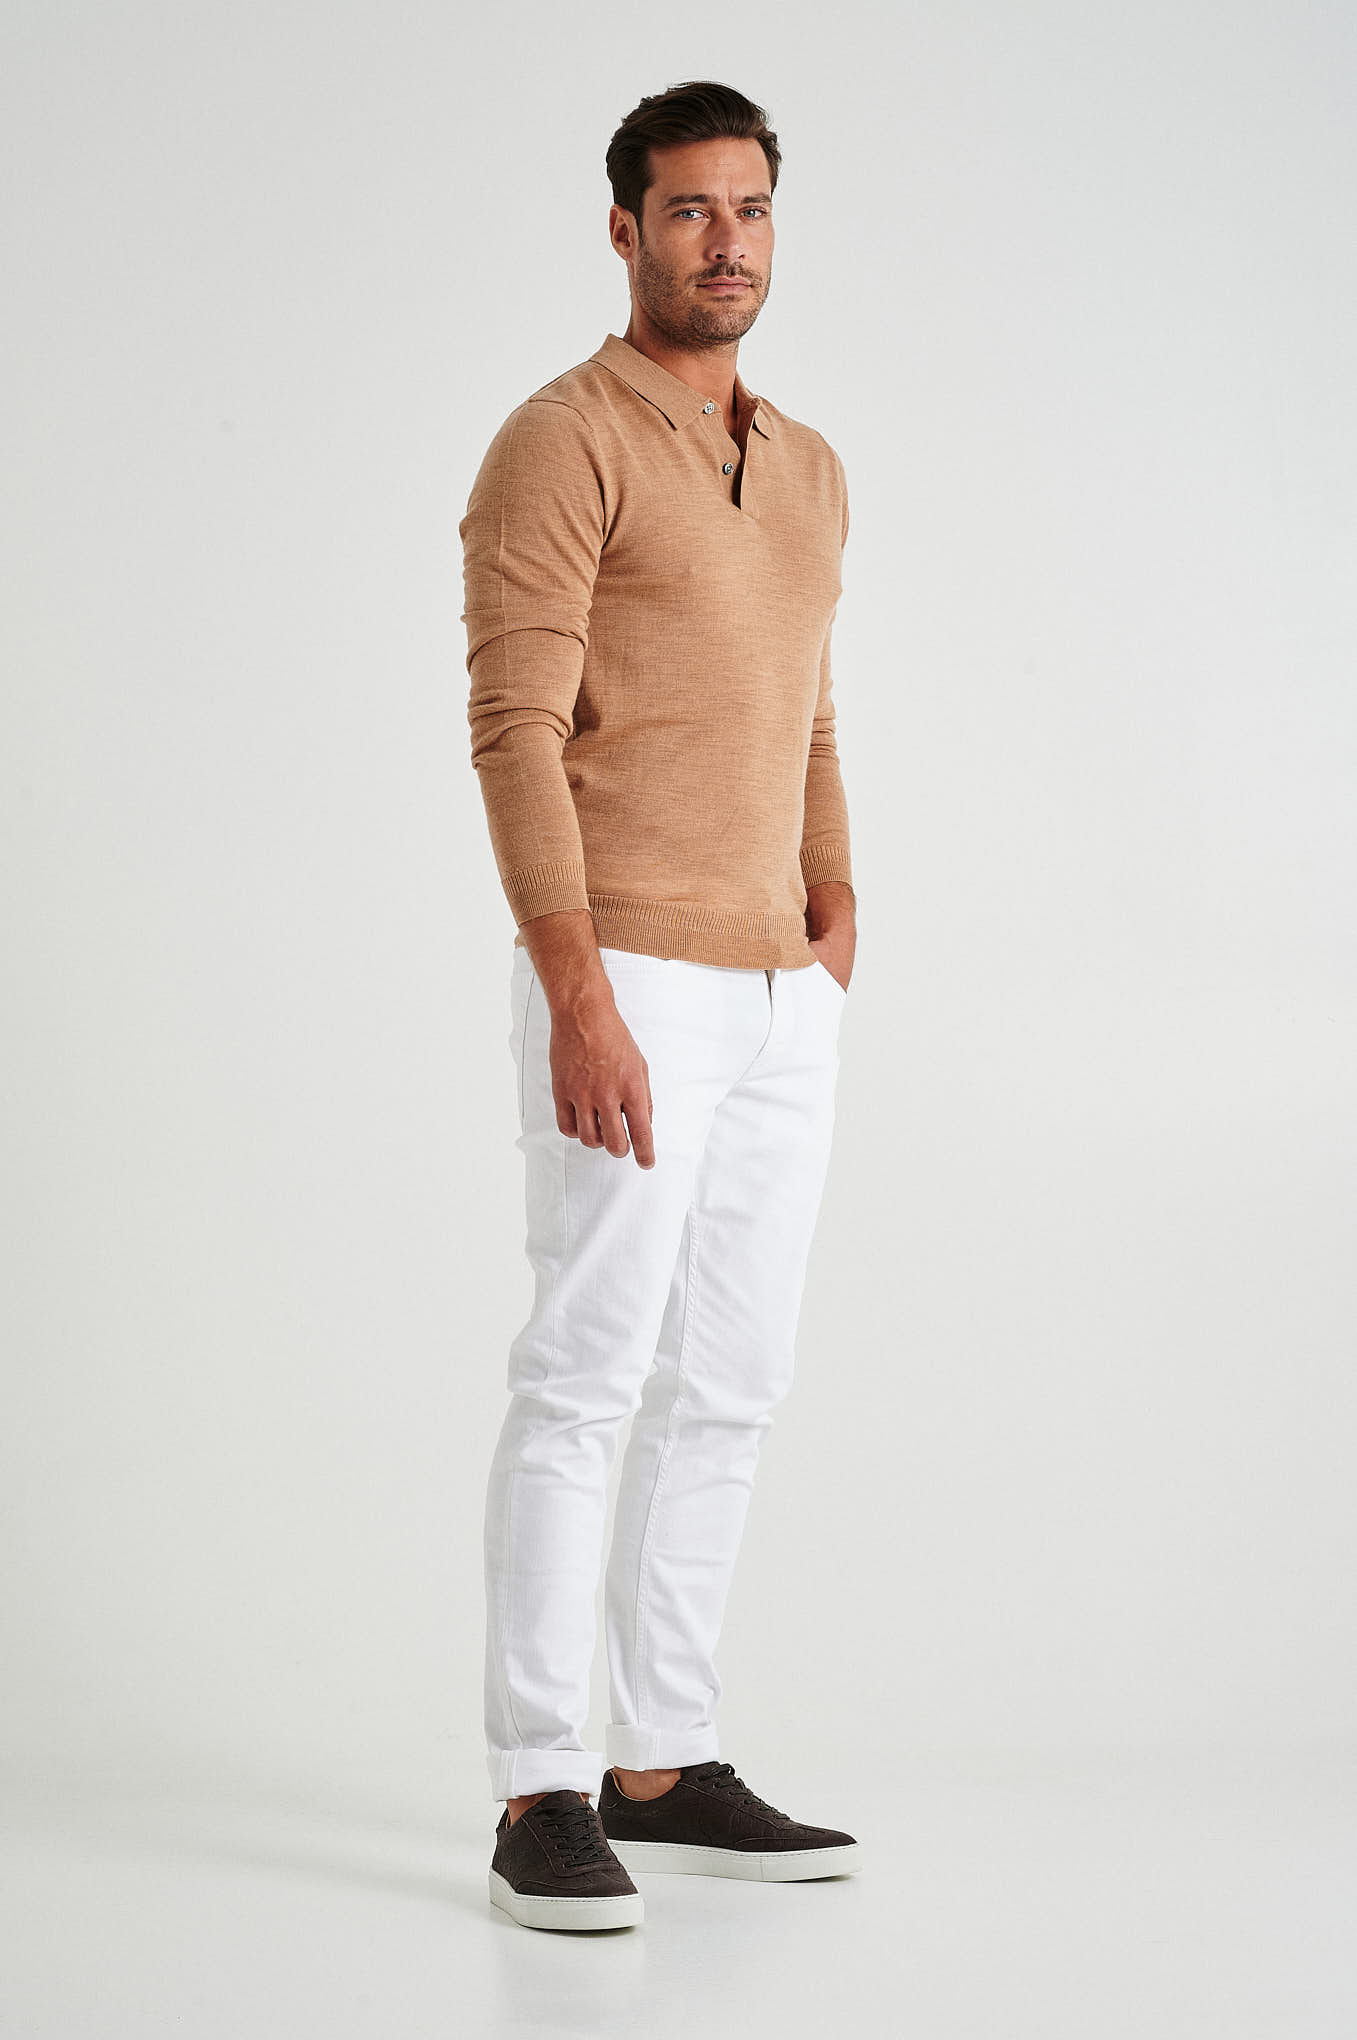 Jeans White Casual Man